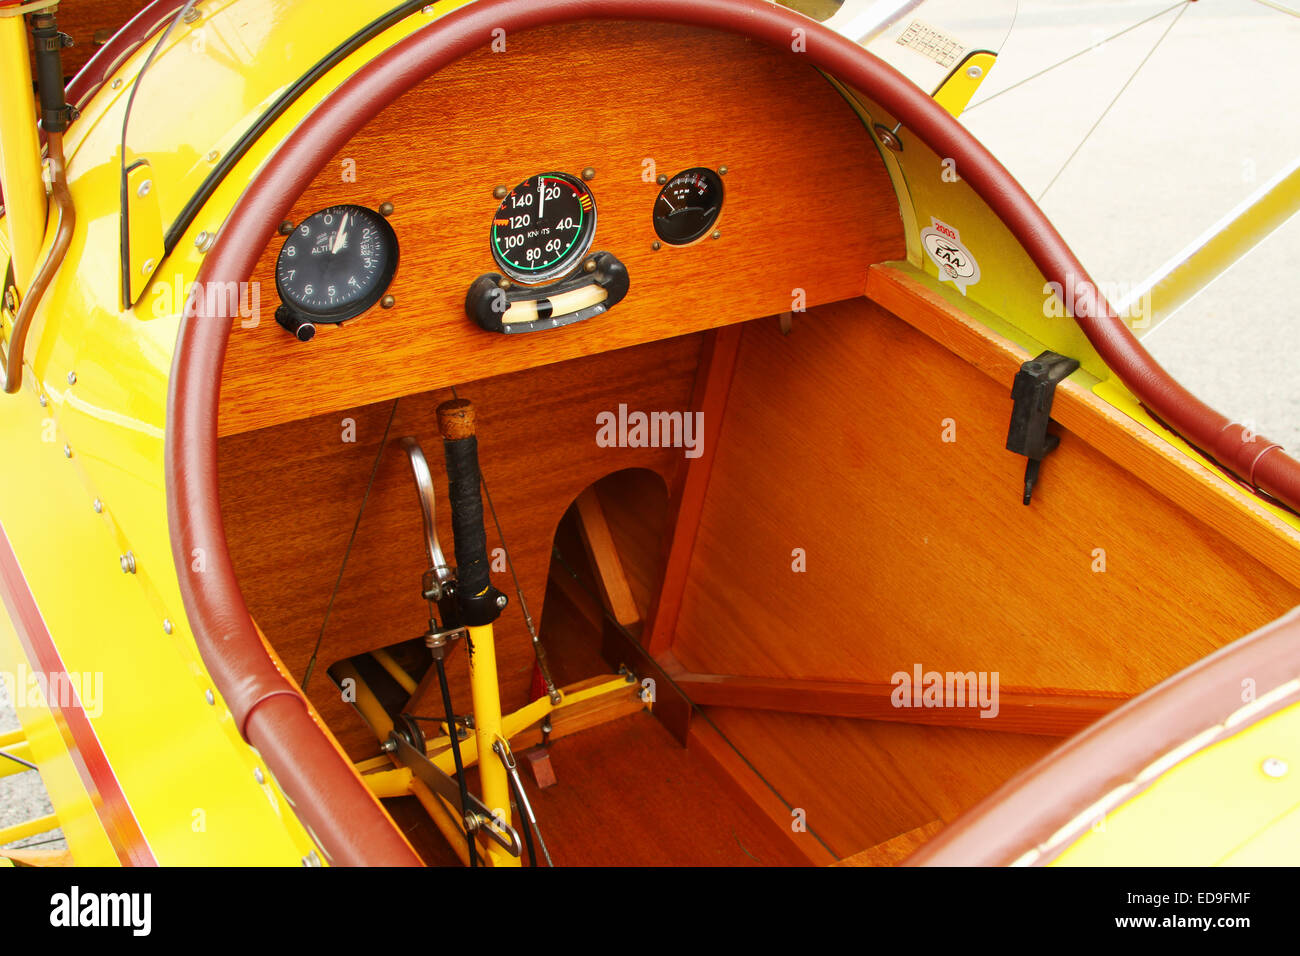 Cockpit and instrumentation in a Pietenpol Air Camper. Yellow Airplane. Possibly custom built experimental or a - Stock Image